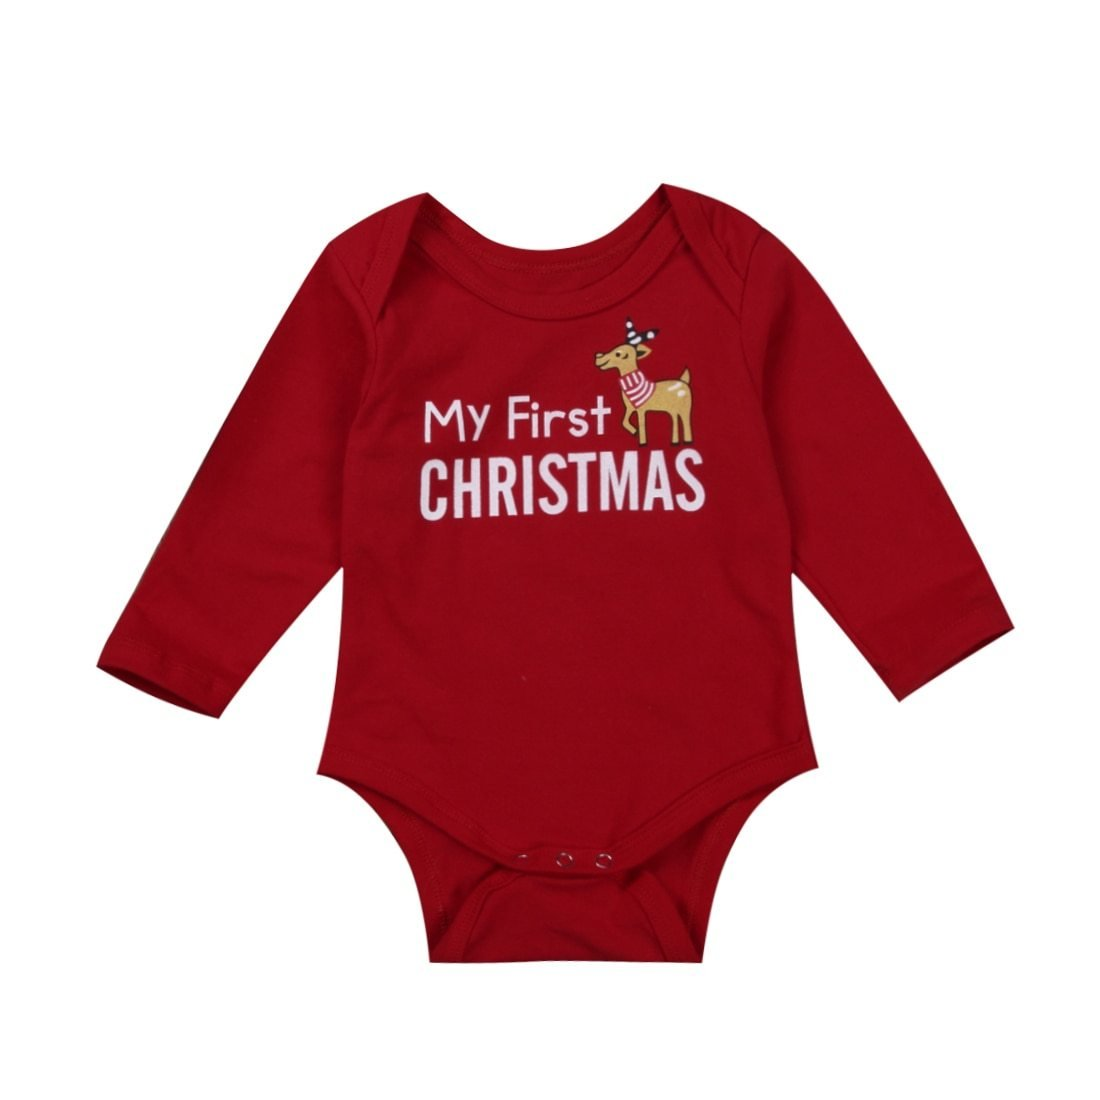 Christmas Baby Romper w/ Deer - My First Christmas - Maraya's Marketplace